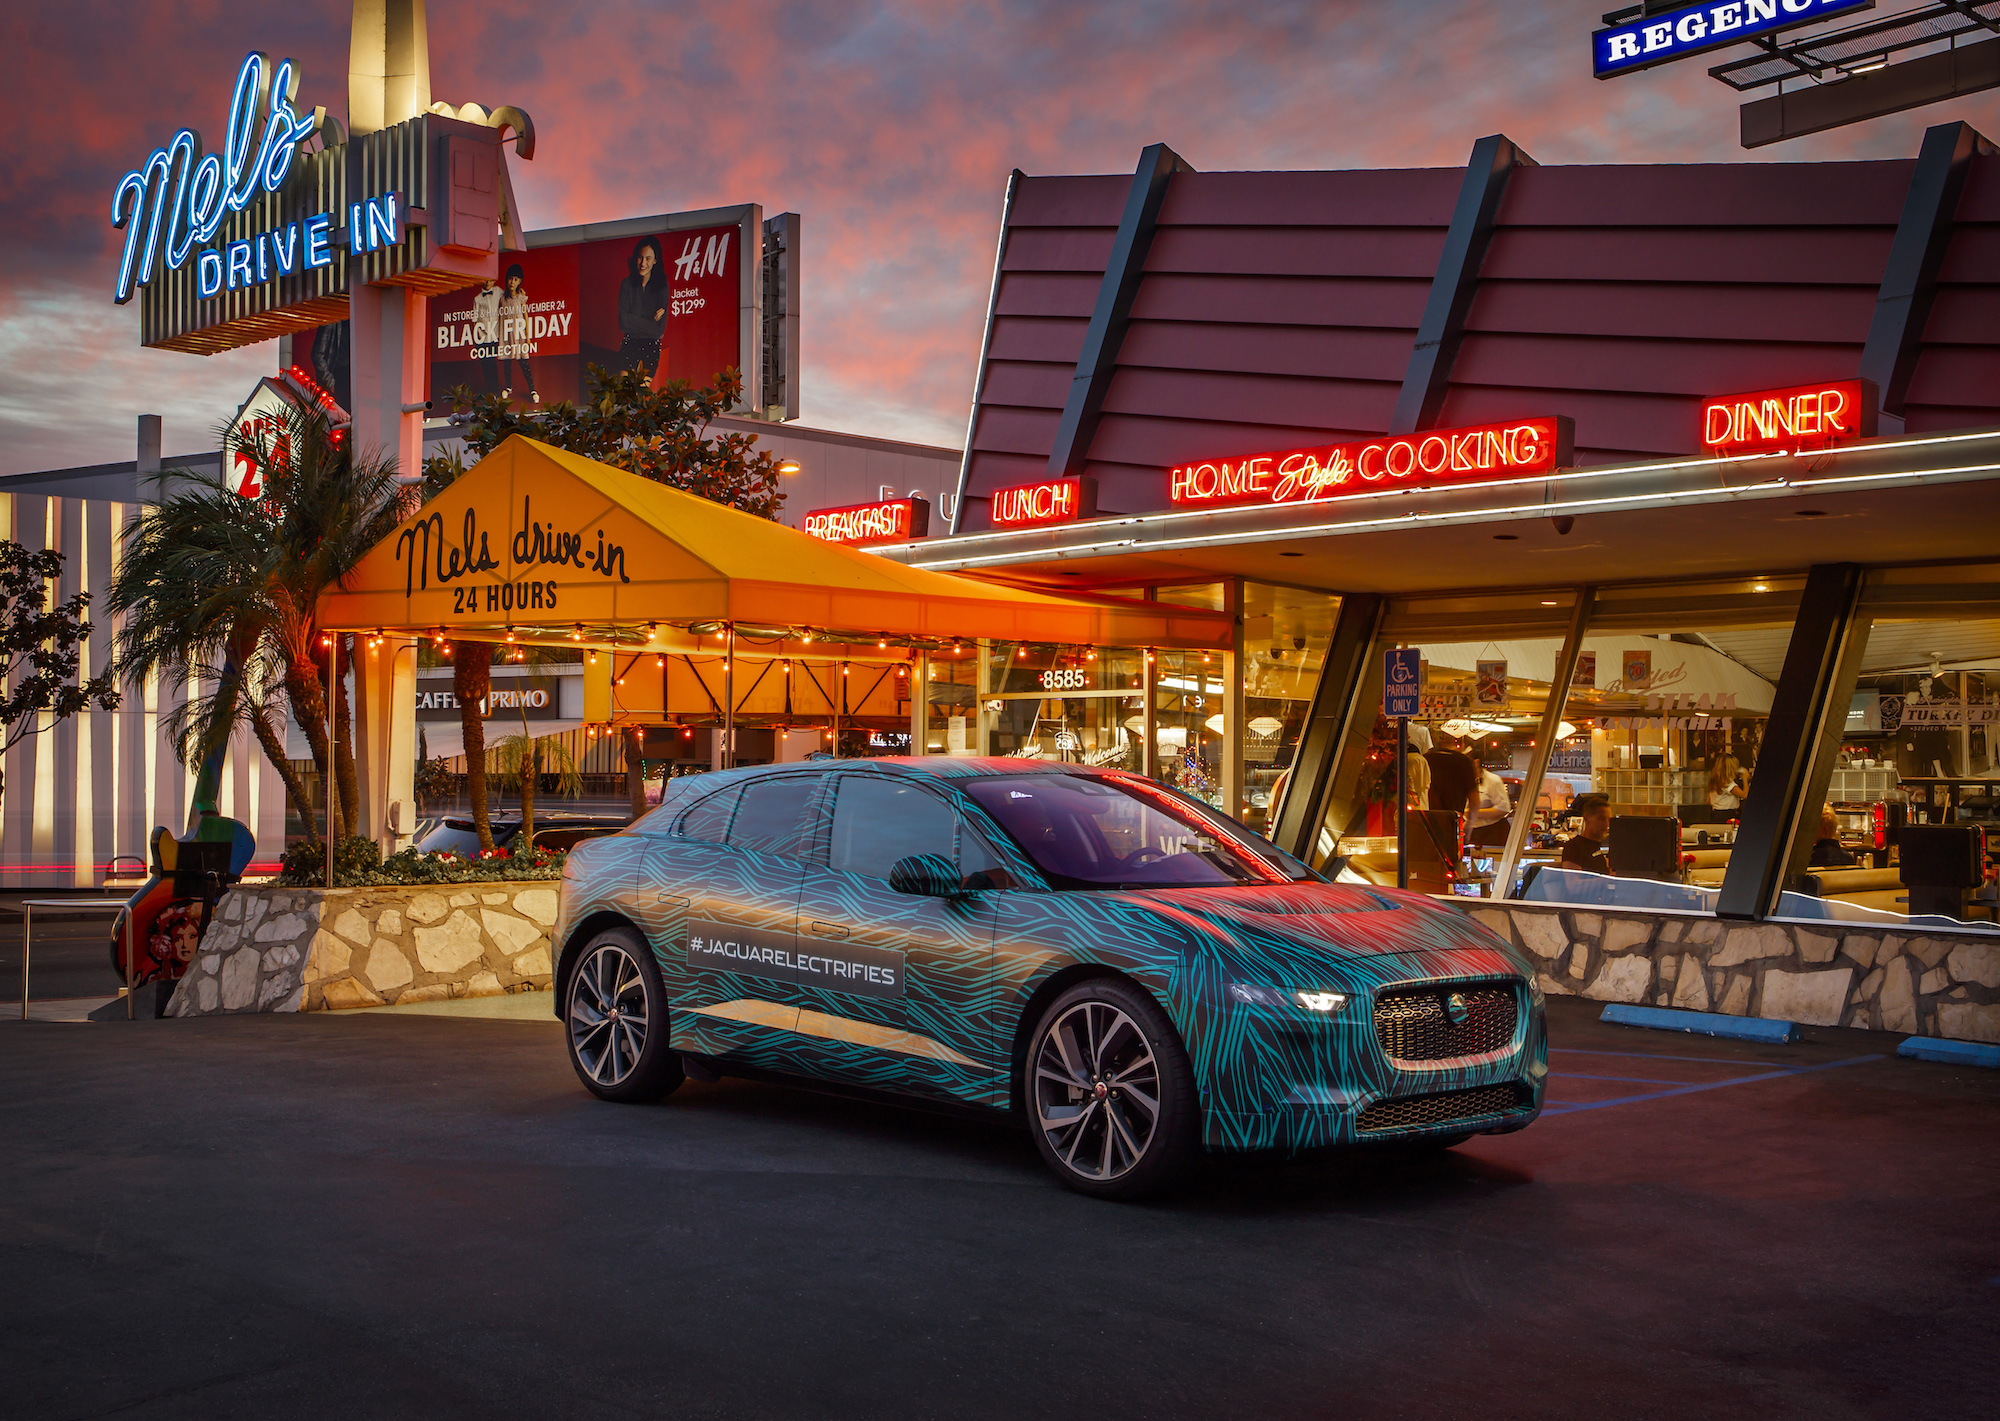 Stylishly Camouflaged All-Electric Jaguar I-Pace Completed Its Testing in Los Angeles